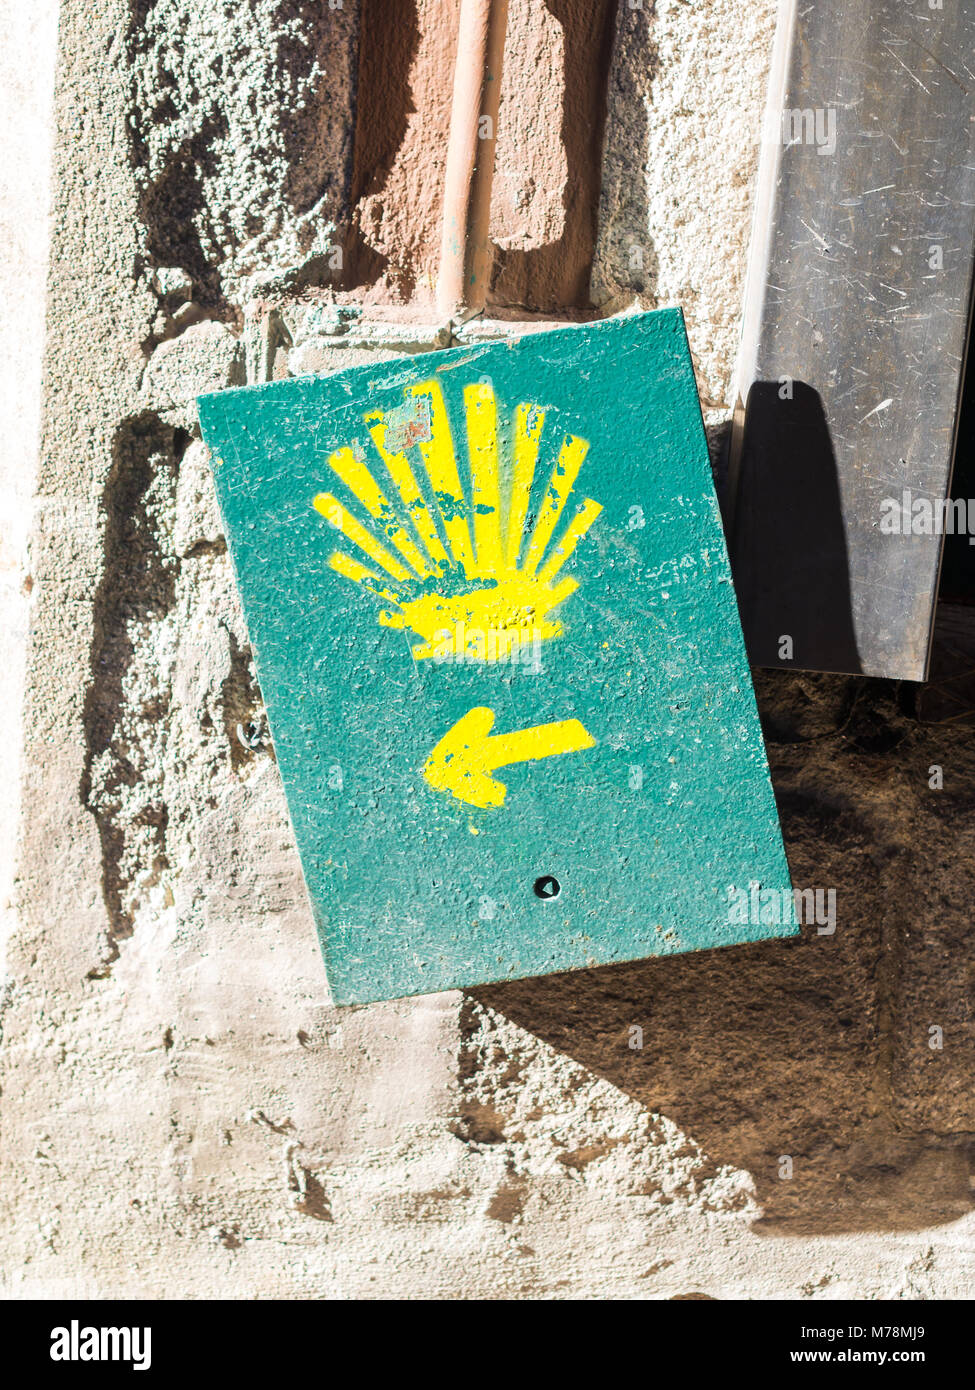 The yellow scallop shell signing the way to Santiago de Compostela in Porto, on the Saint James pilgrimage route. - Stock Image